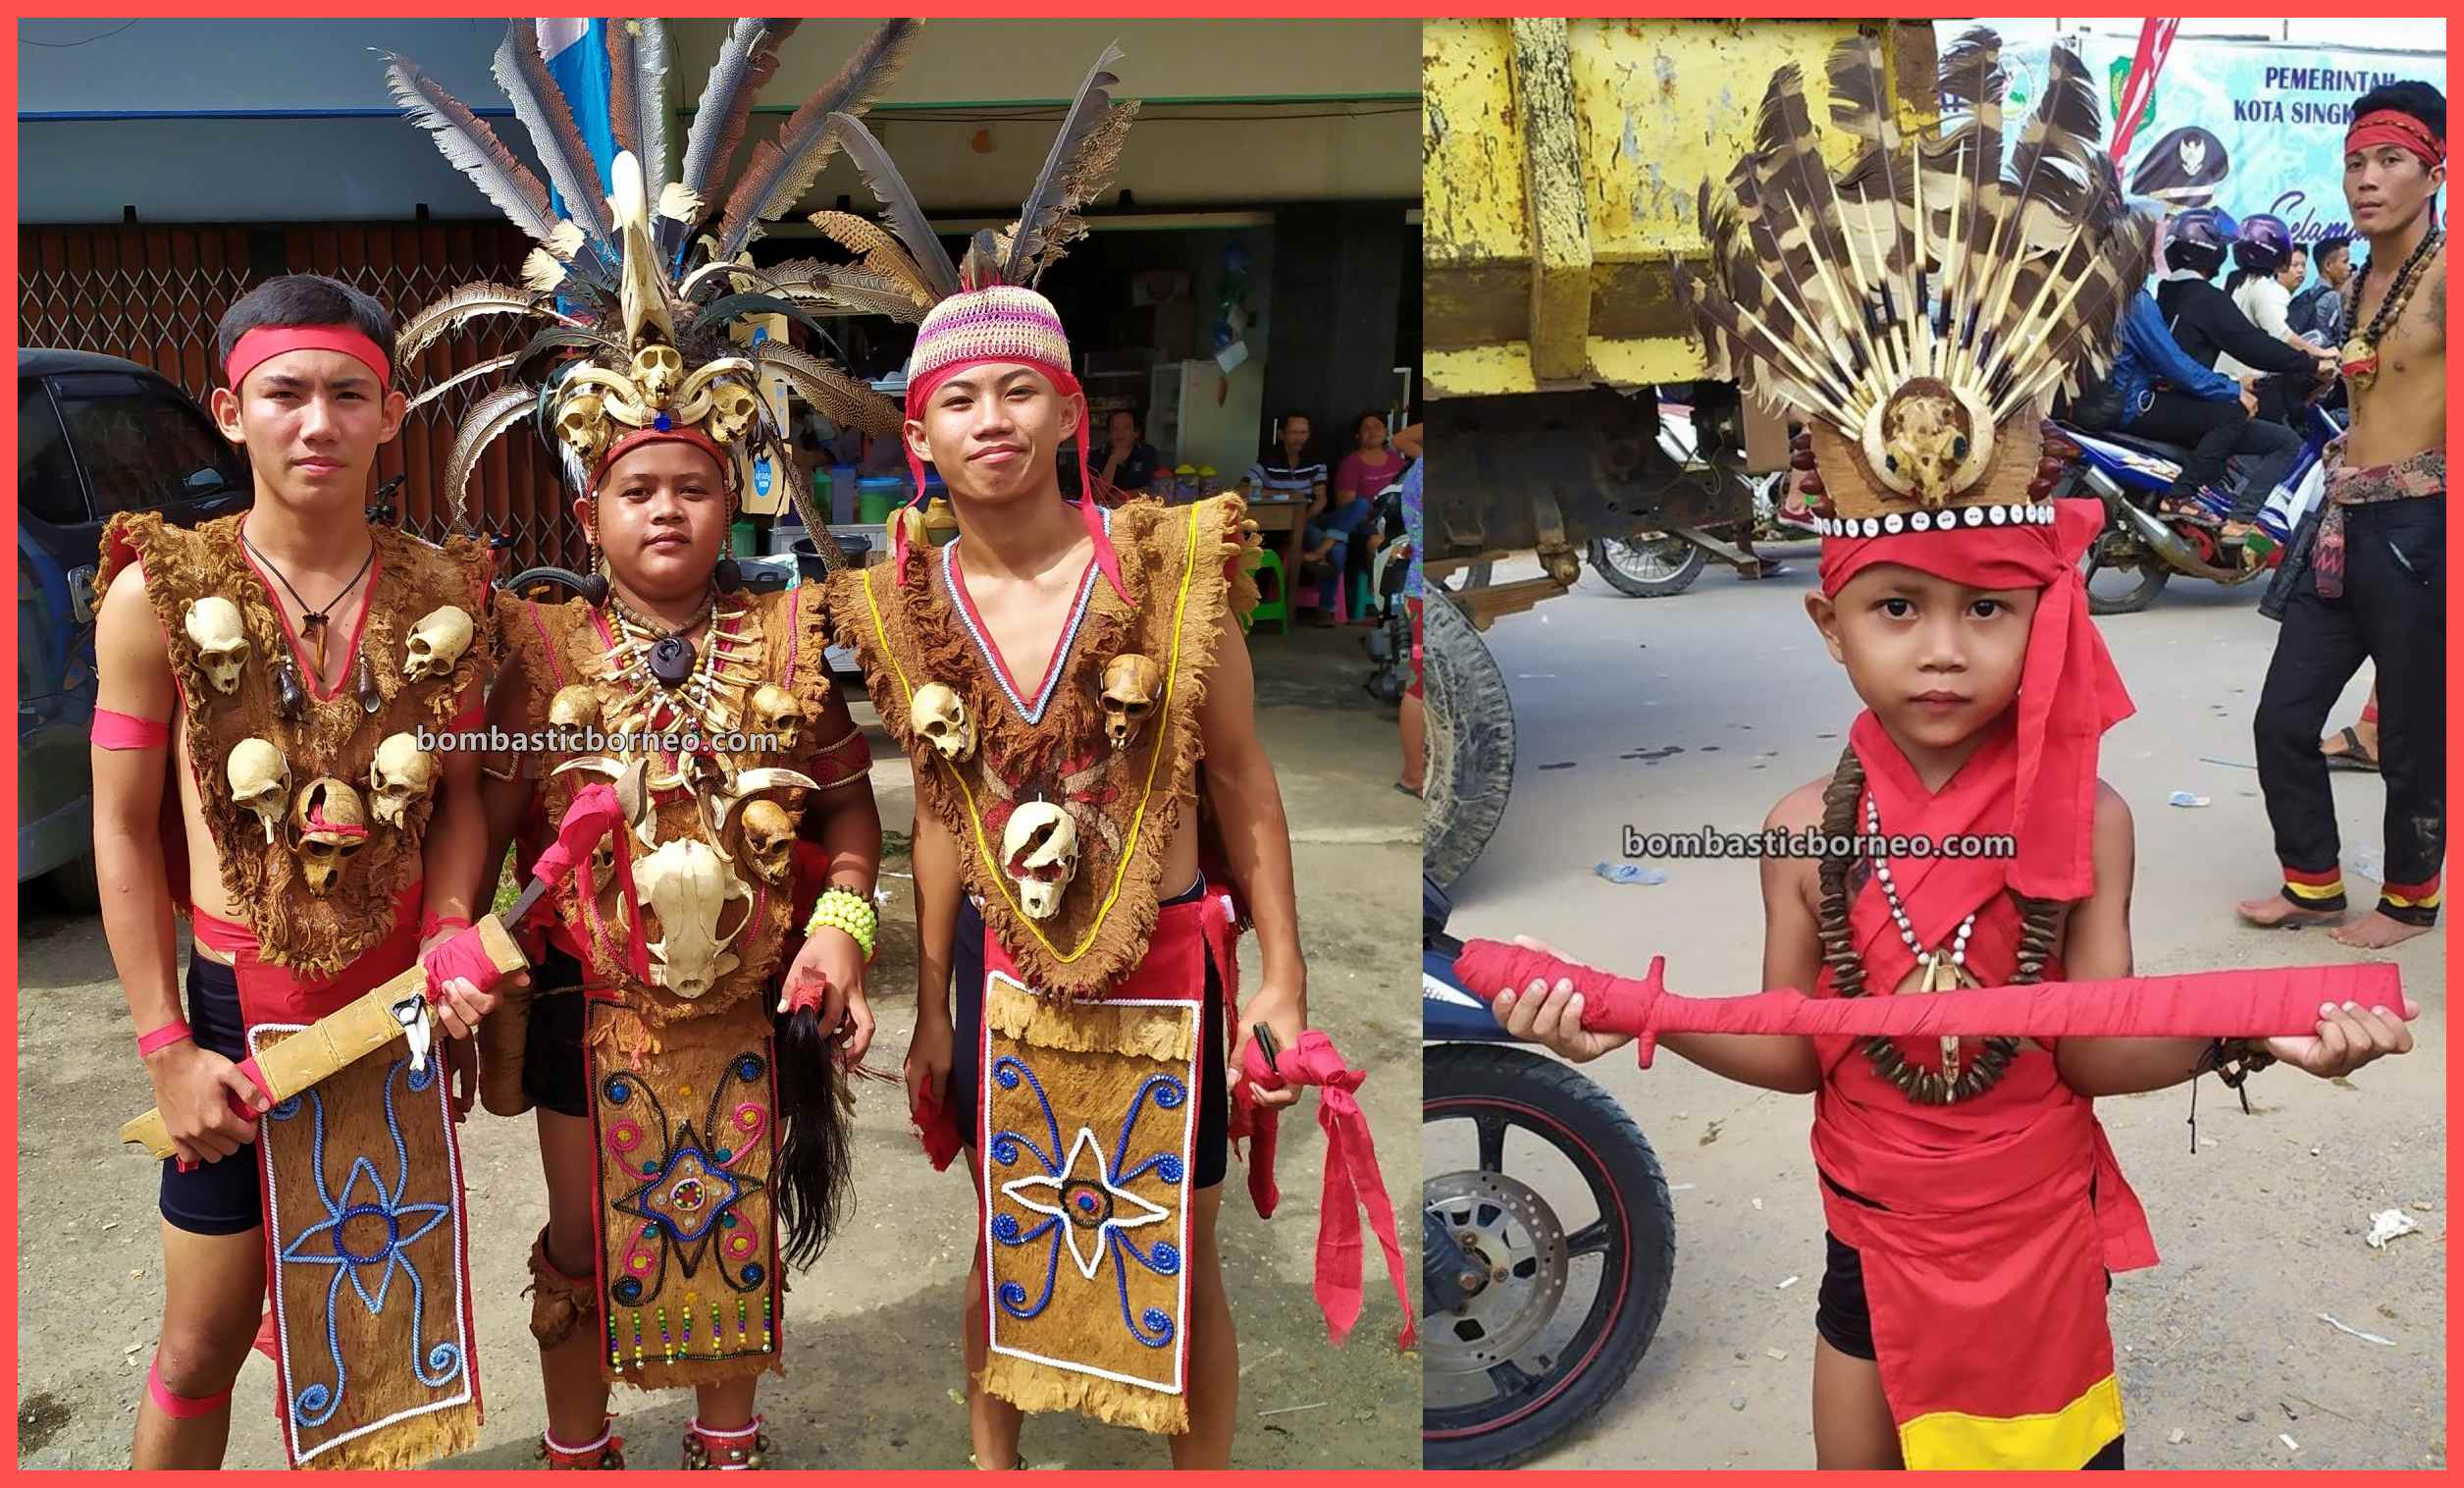 traditional, culture, event, Ethnic, tribal, Indonesia, West Kalimantan, destination, Tourism, tourist attraction, travel guide, Cross Border, 跨境婆罗洲印尼, 西加里曼丹部落, 孟加映原住民文化,